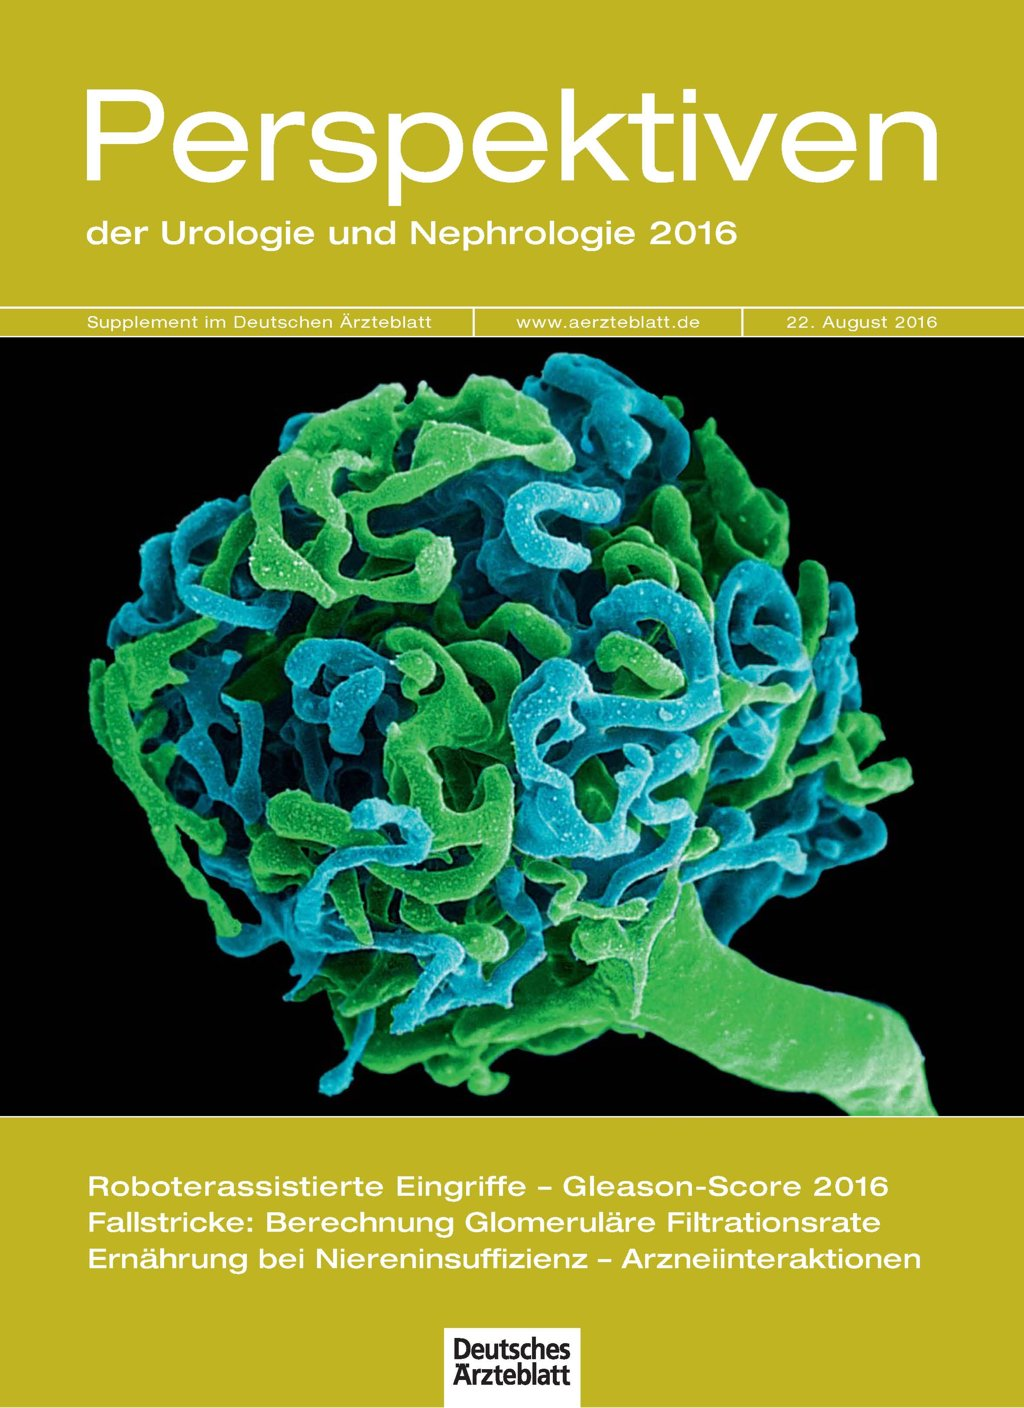 Supplement: Perspektiven der Urologie